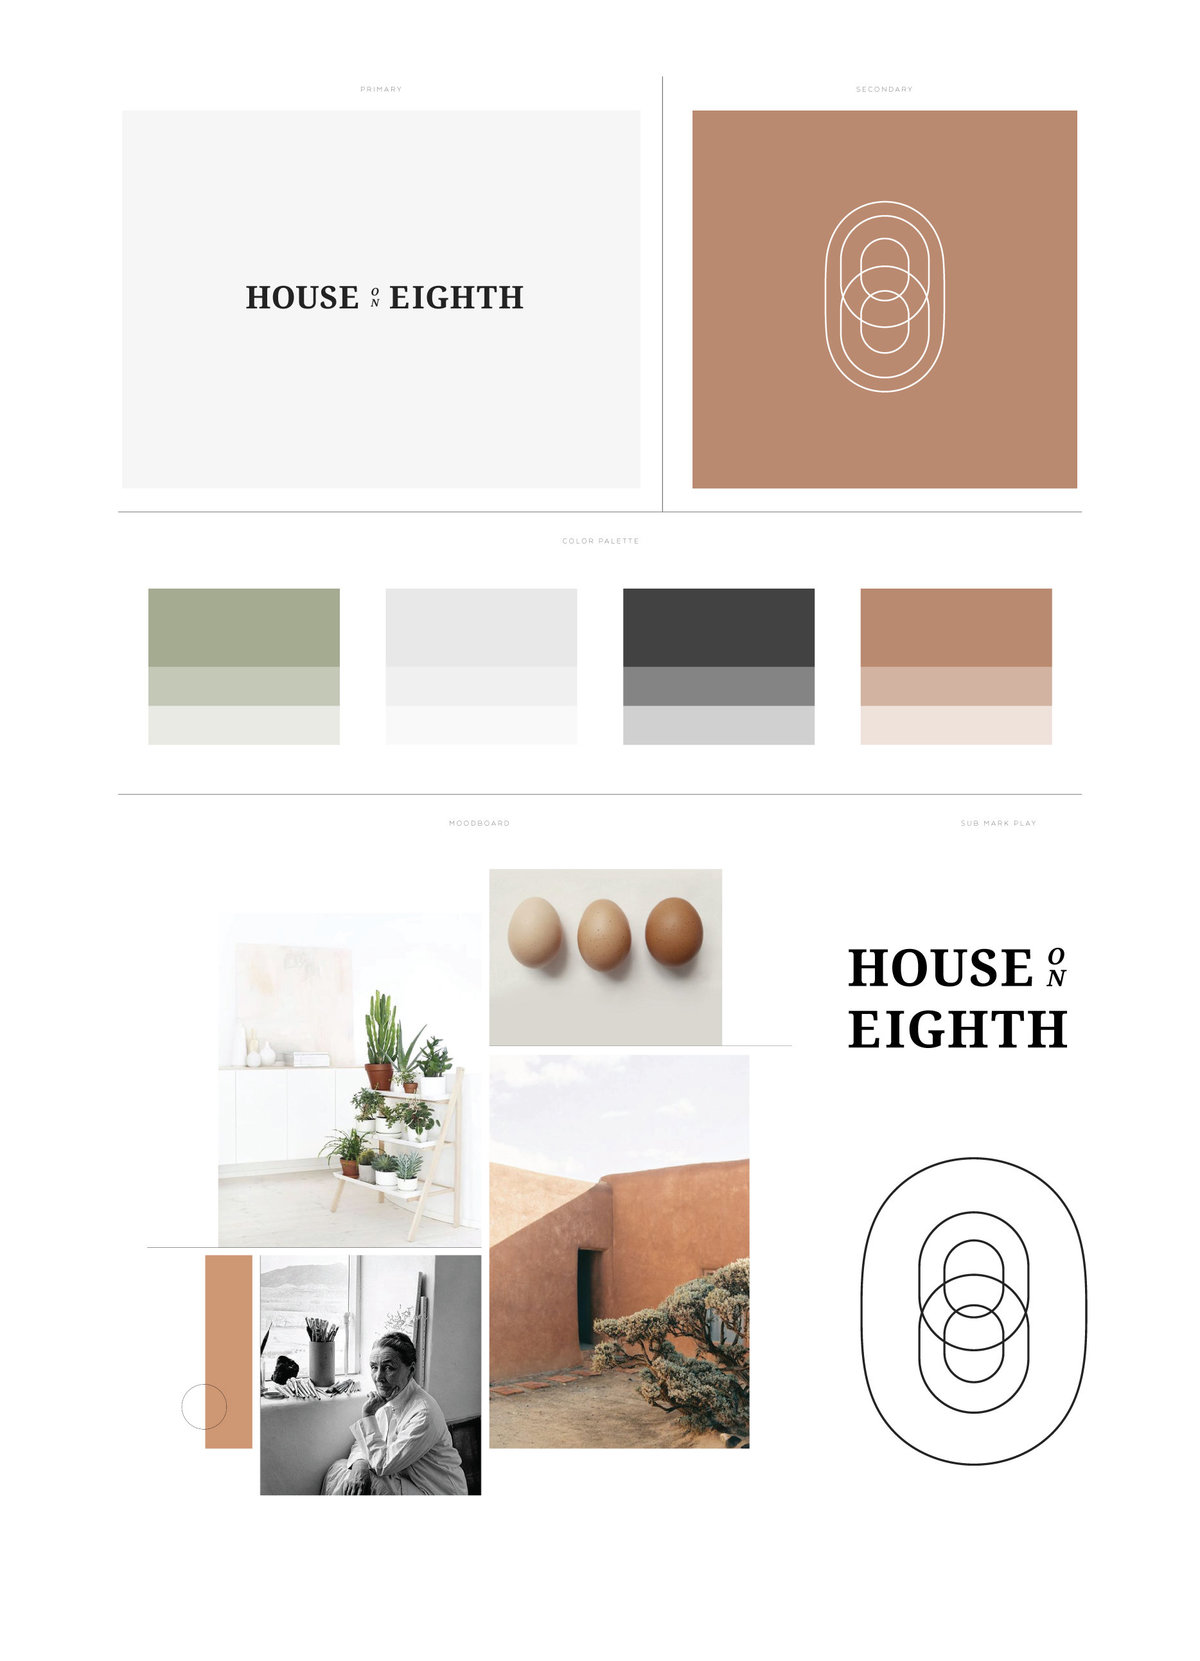 HOUSEONEIGHT_HONOR_BRANDBOARD